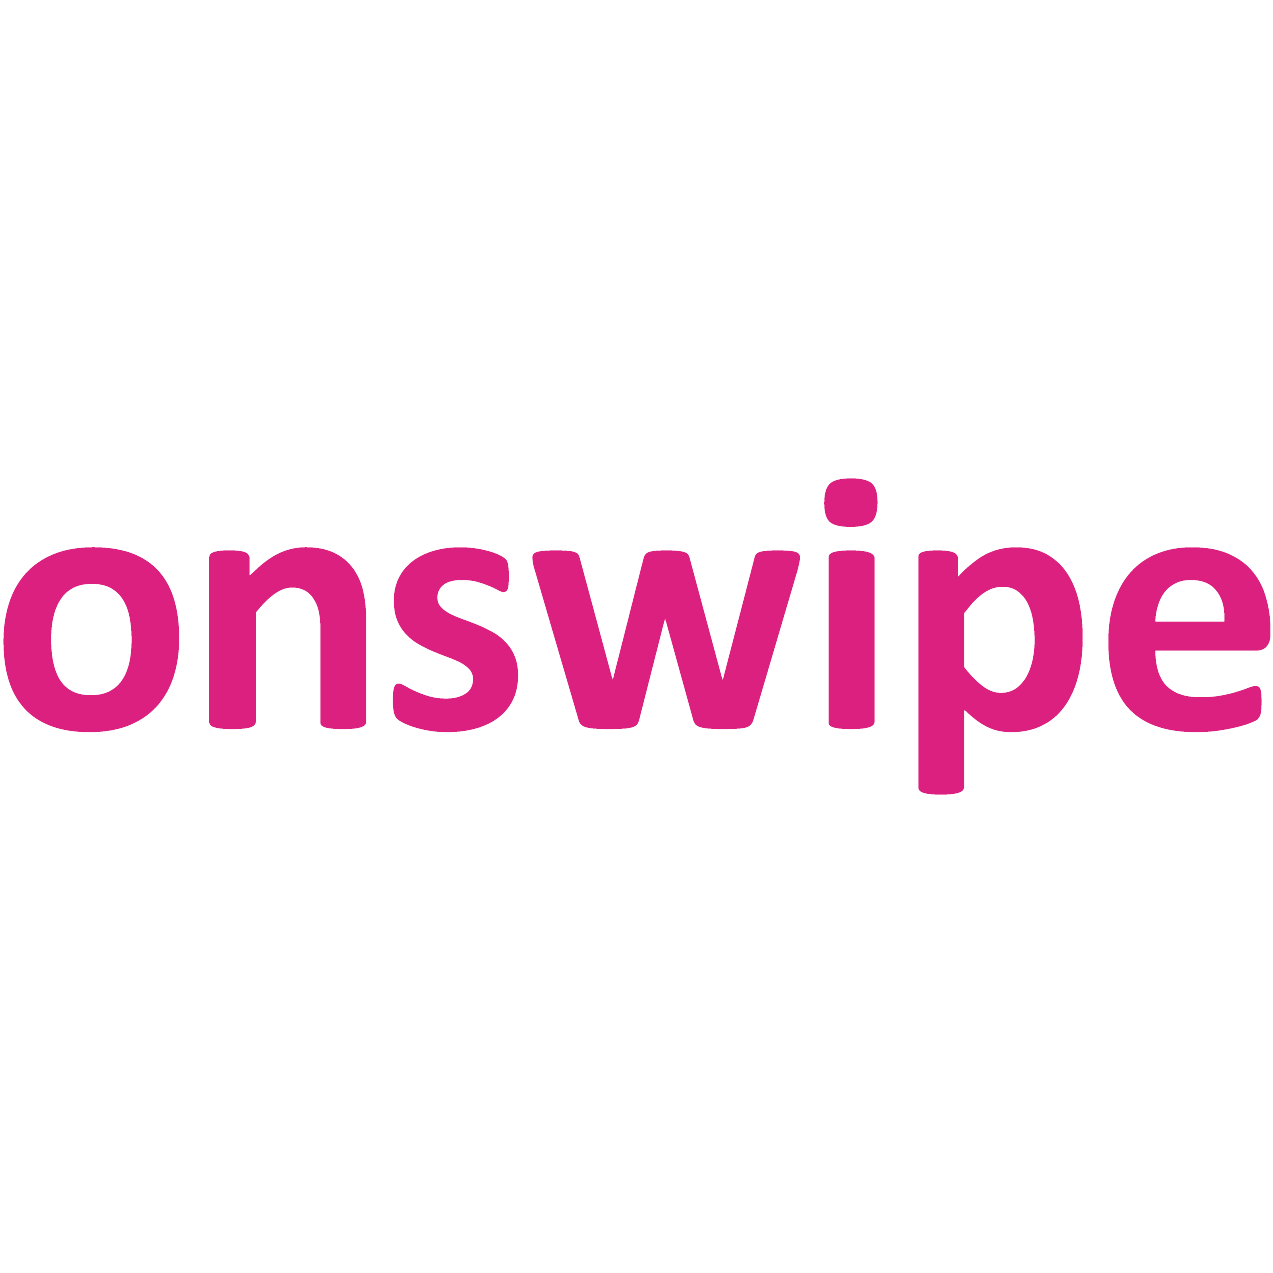 Onswipe-LogoV2-012.png